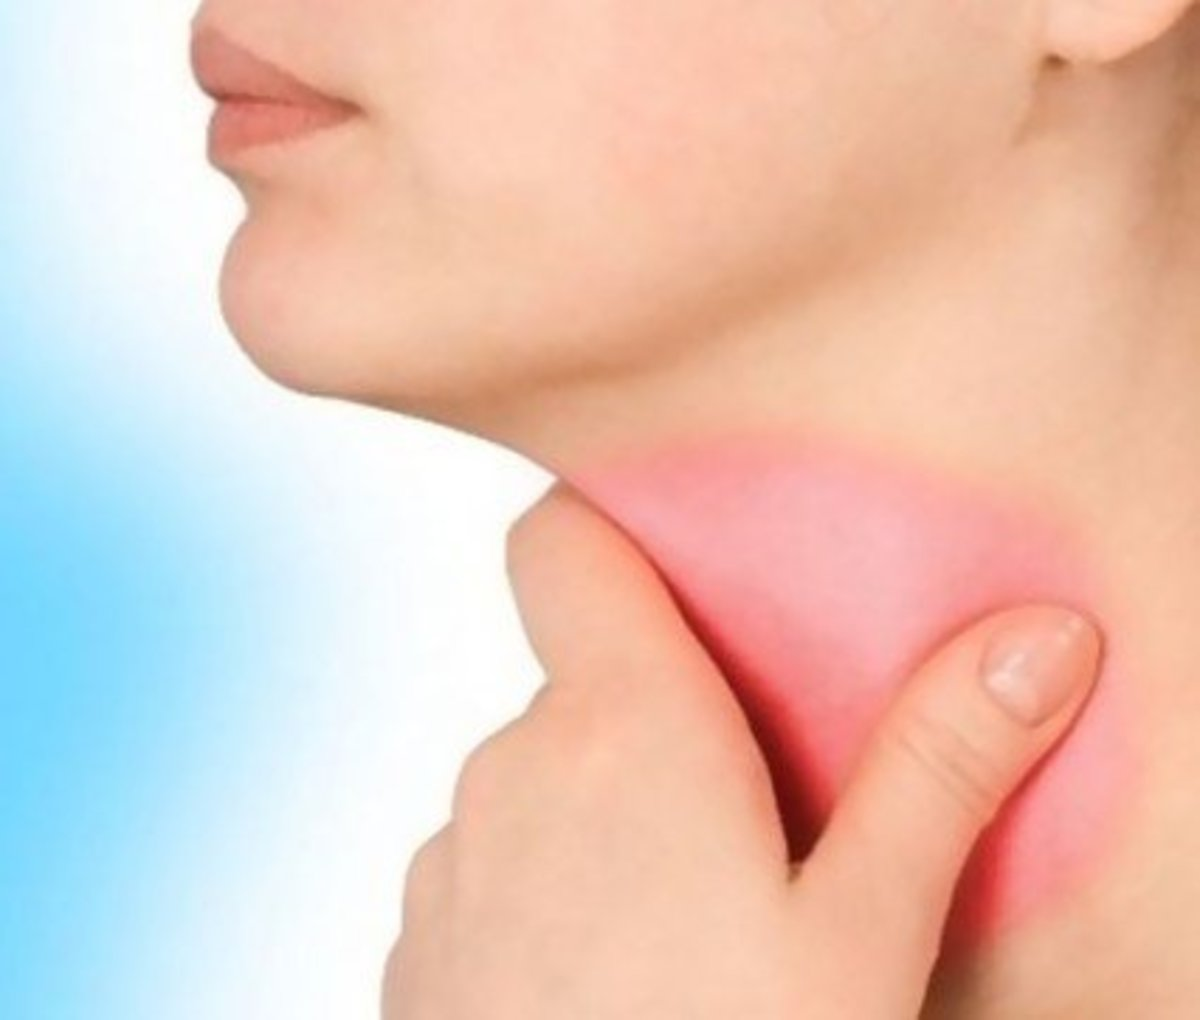 Sore throat and Swollen glands - Causes and Treatment